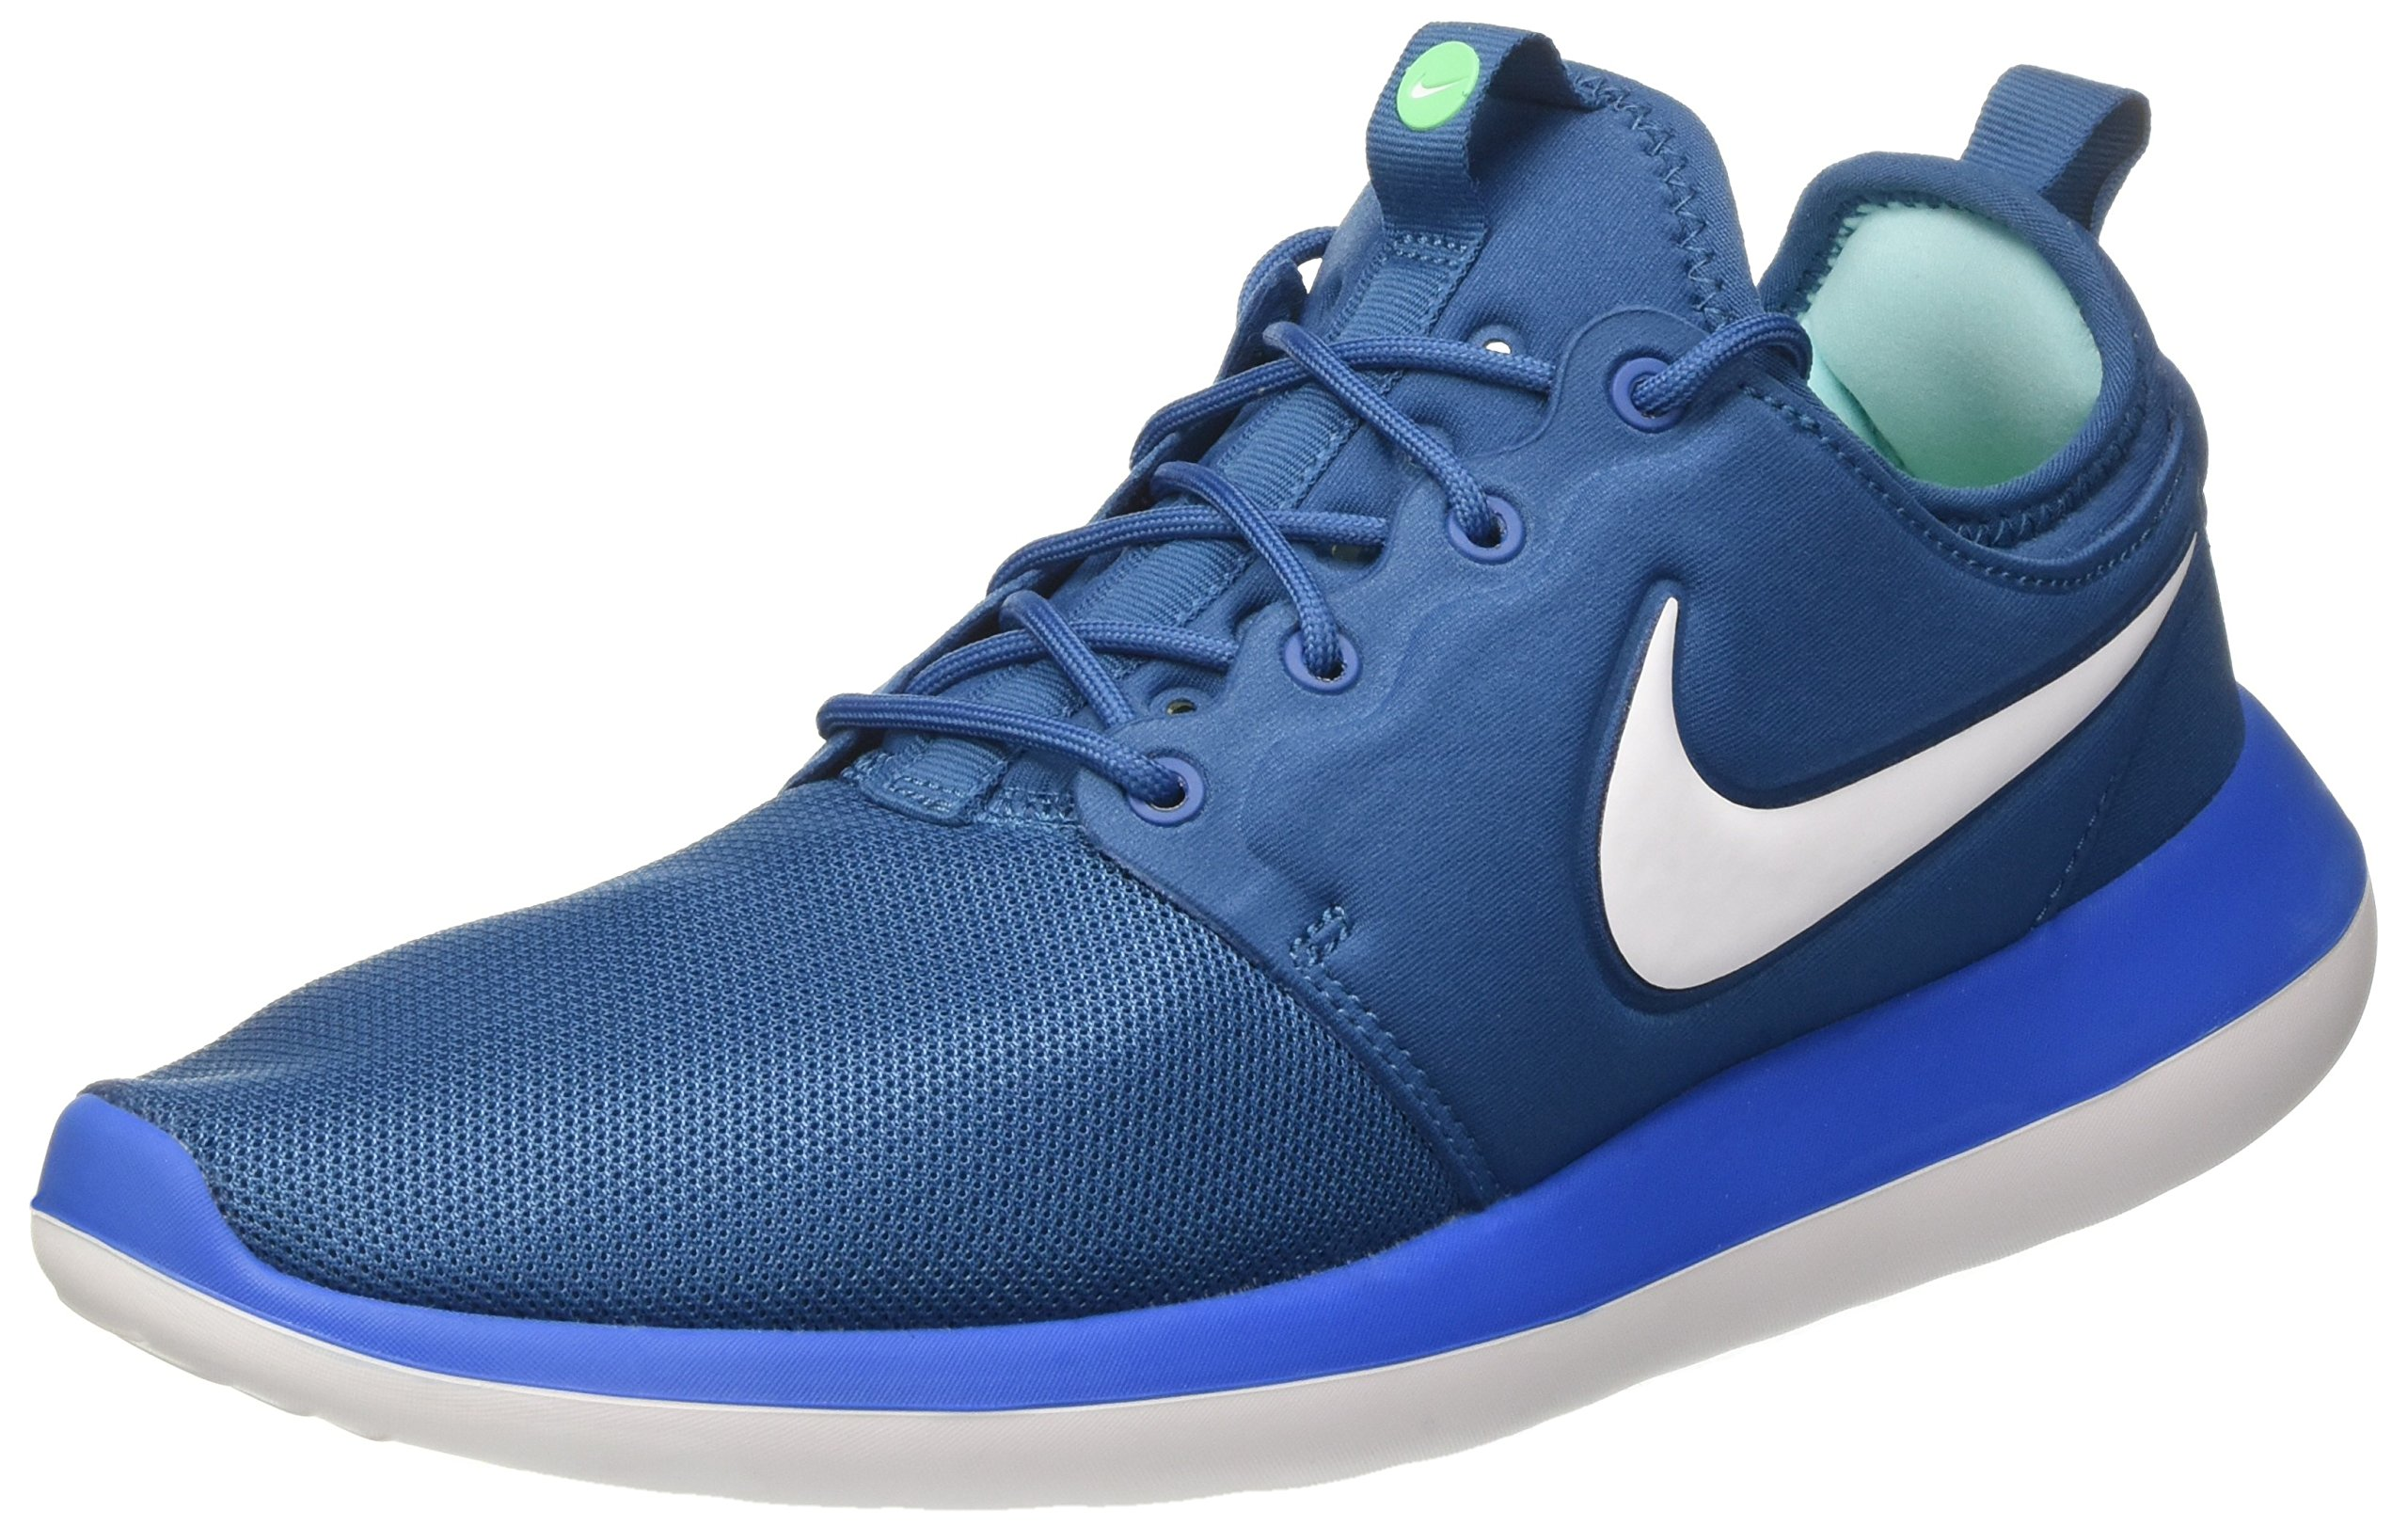 Details about NIKE Men's Roshe Two Running Shoe Industrial Blue White 402  9.5 D(M) US